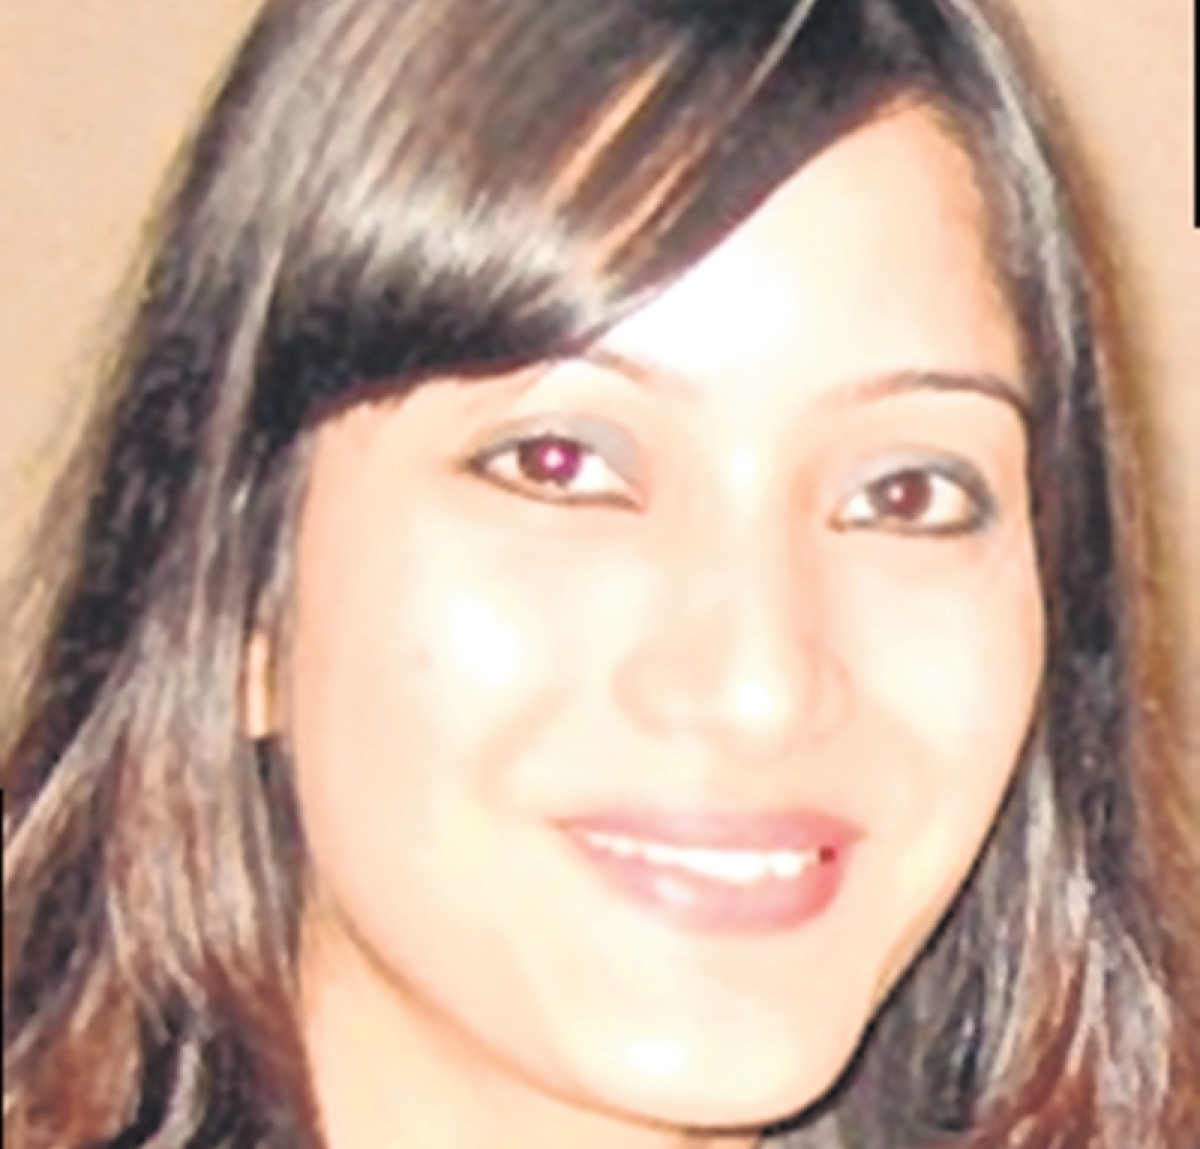 Couldn't find out cause of death: Doctor tells court